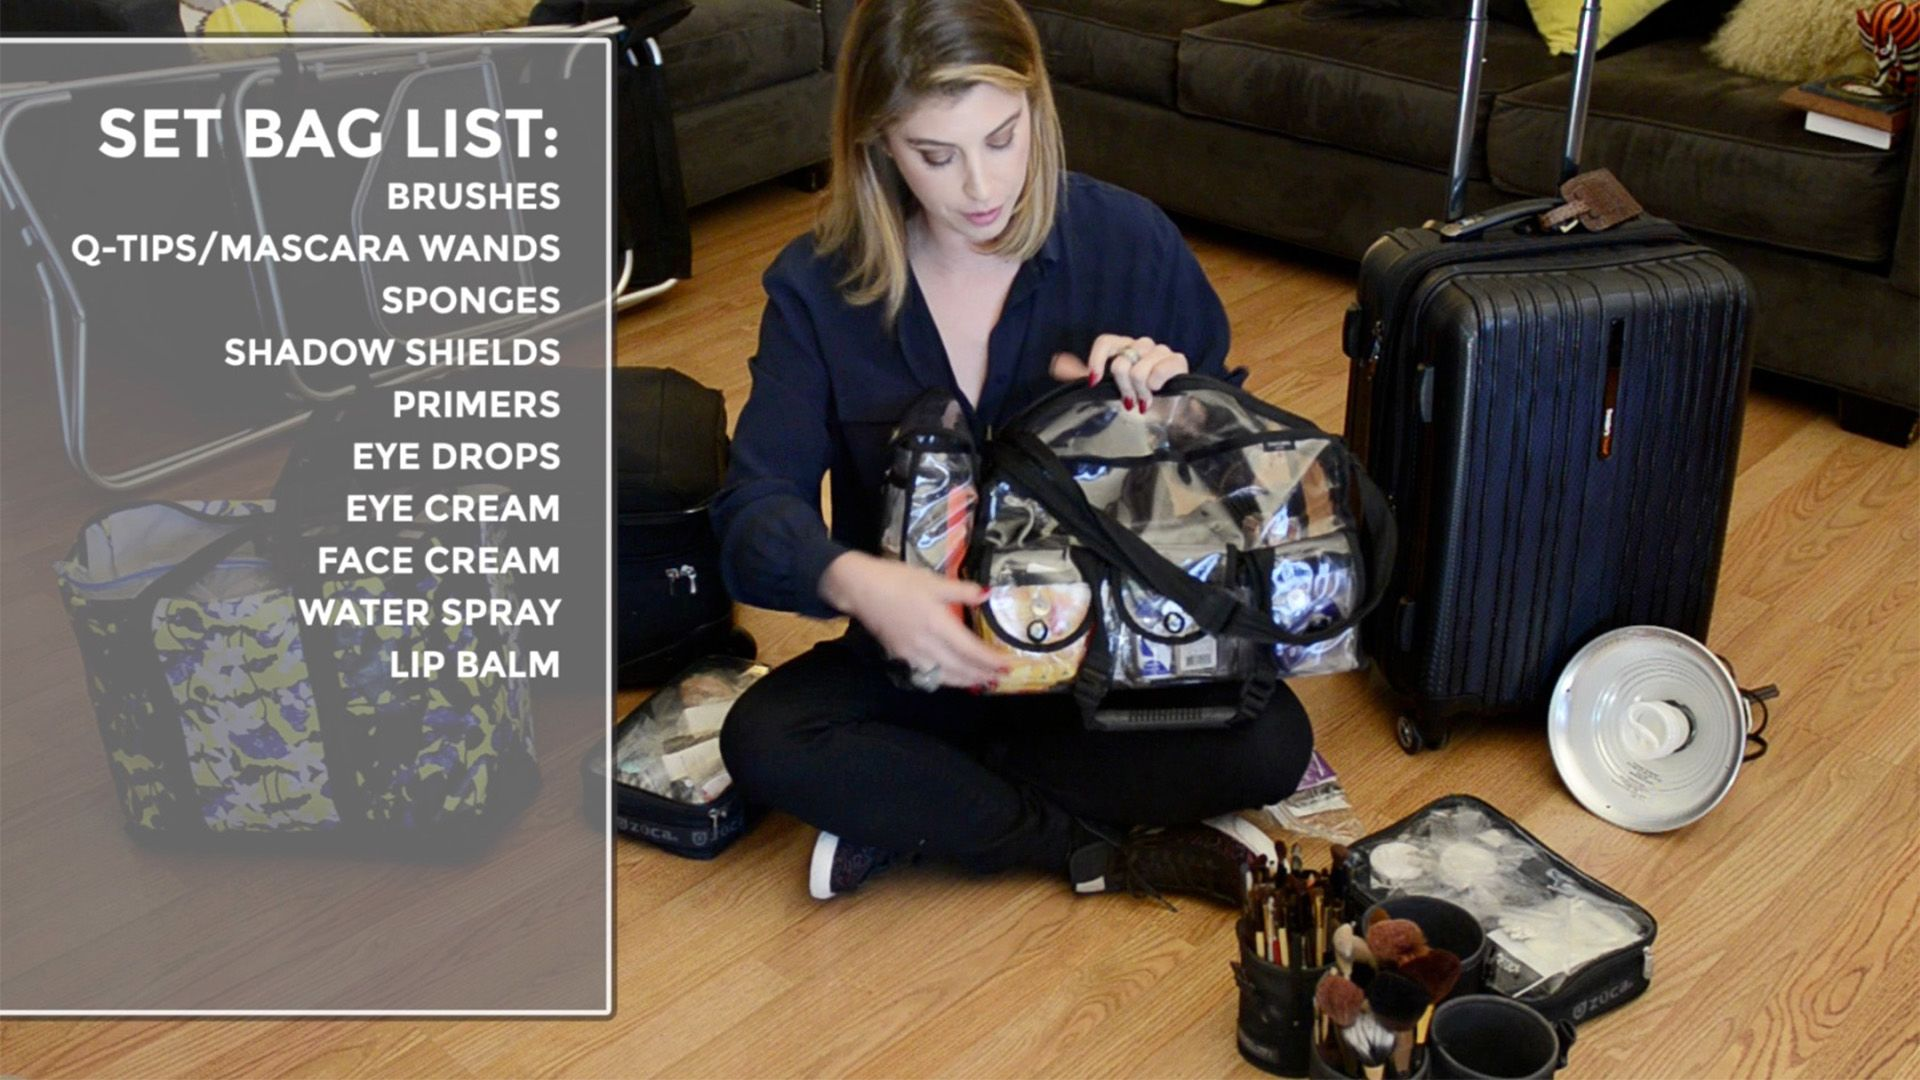 Celebrity Makeup Artist Tips: How to Organize Your Makeup